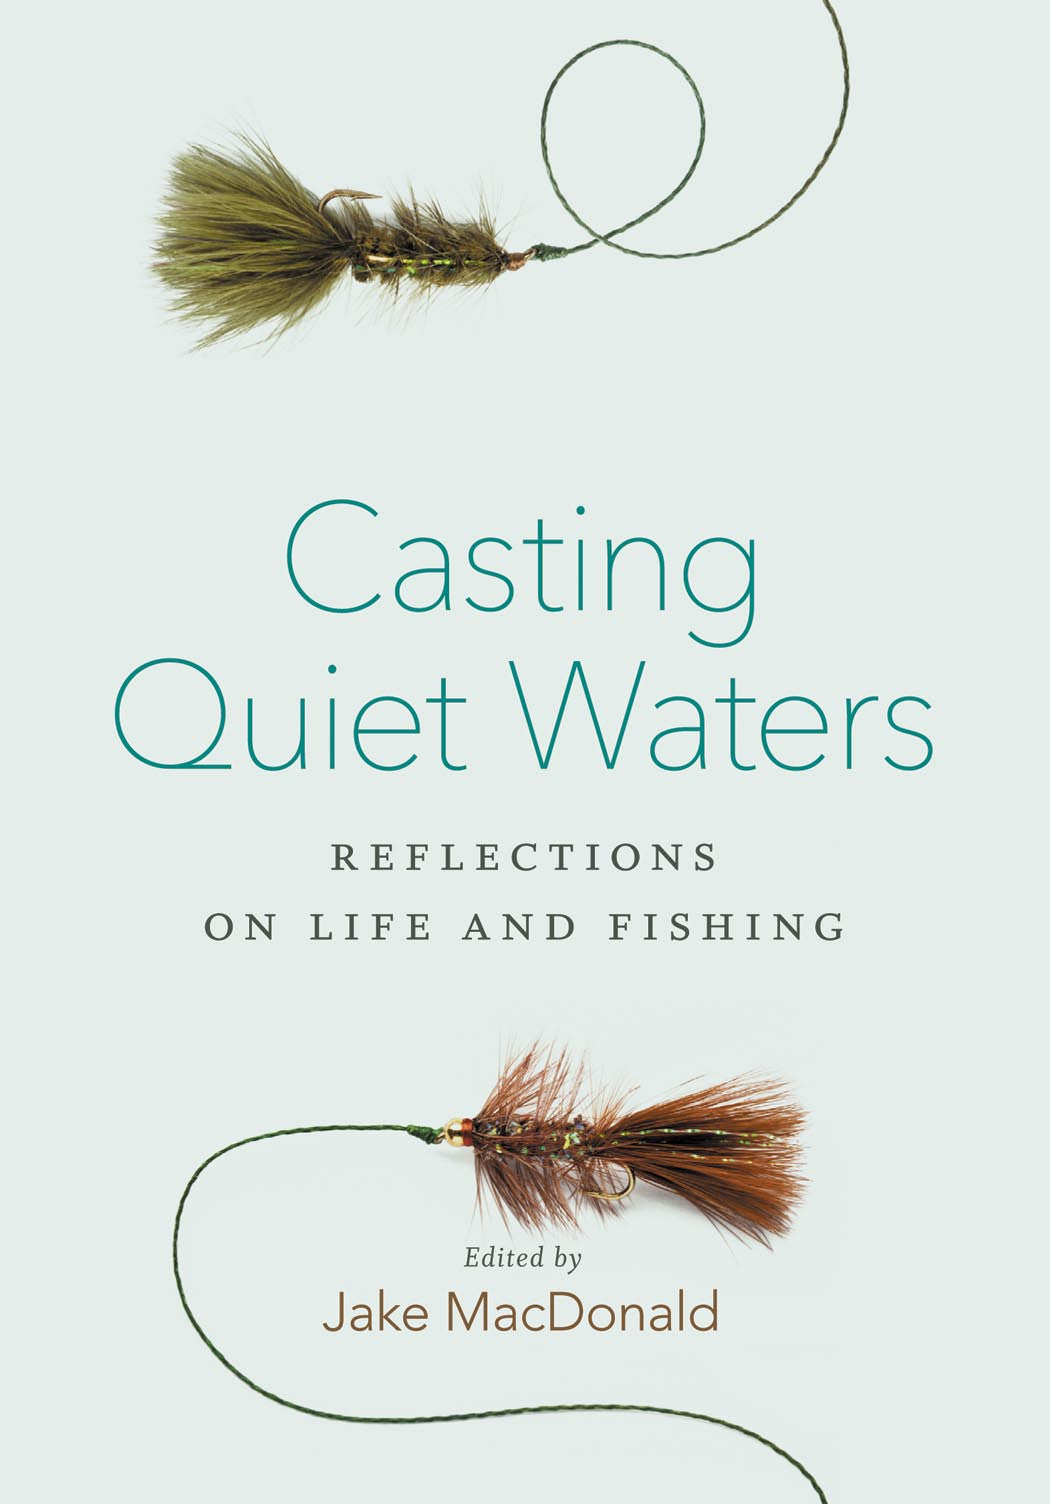 Casting Quiet Waters